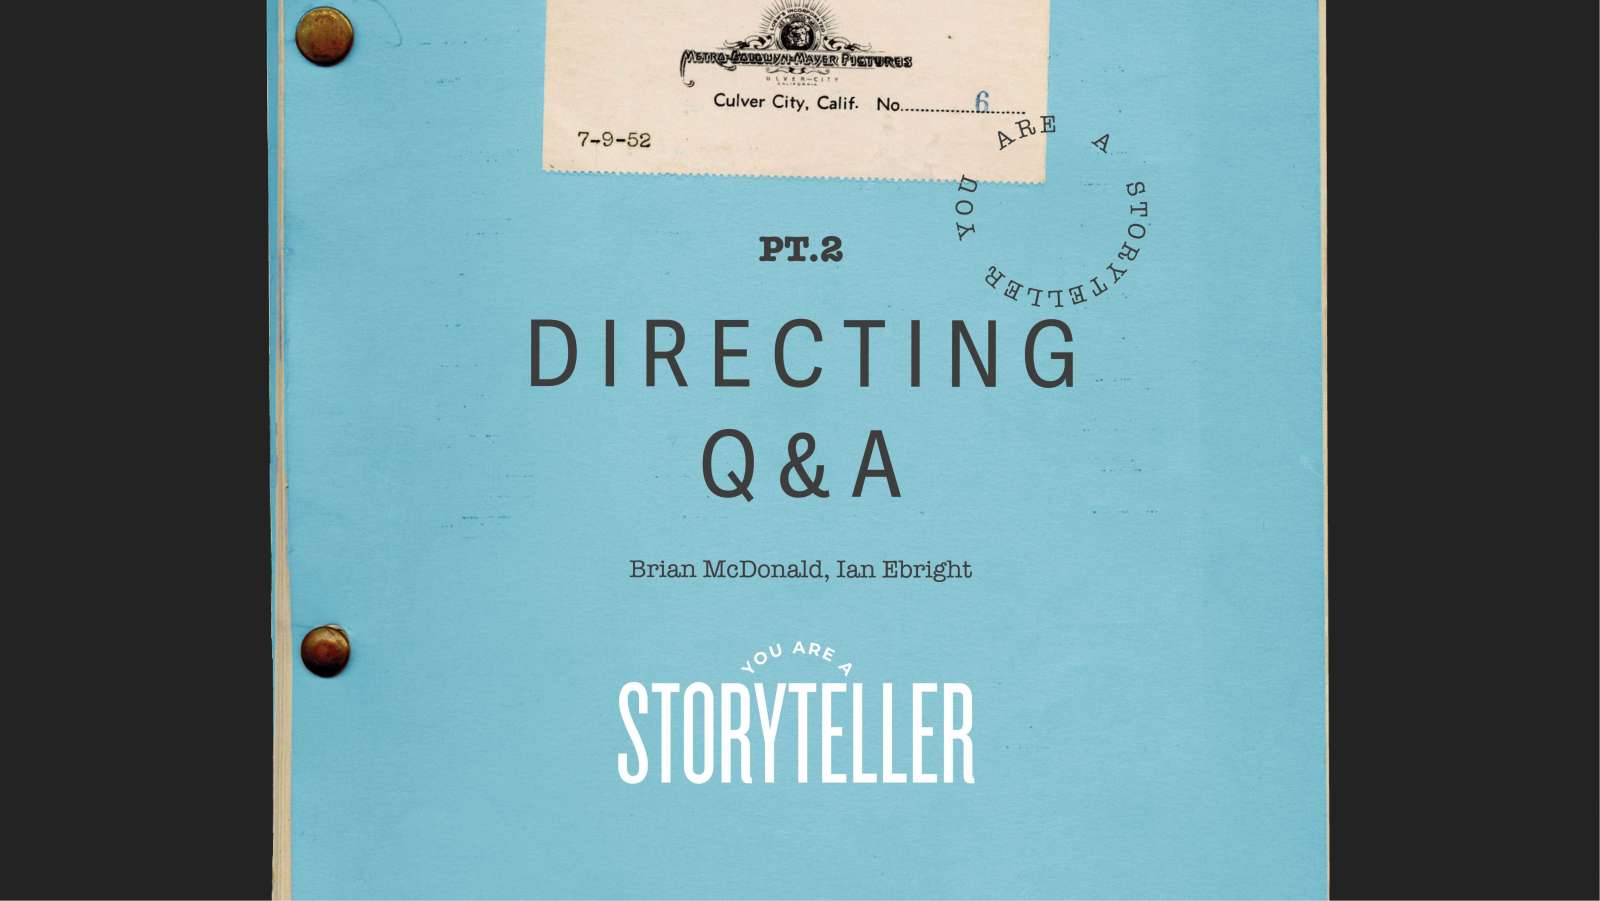 You Are a Storyteller: Directing Q&A Hero Image